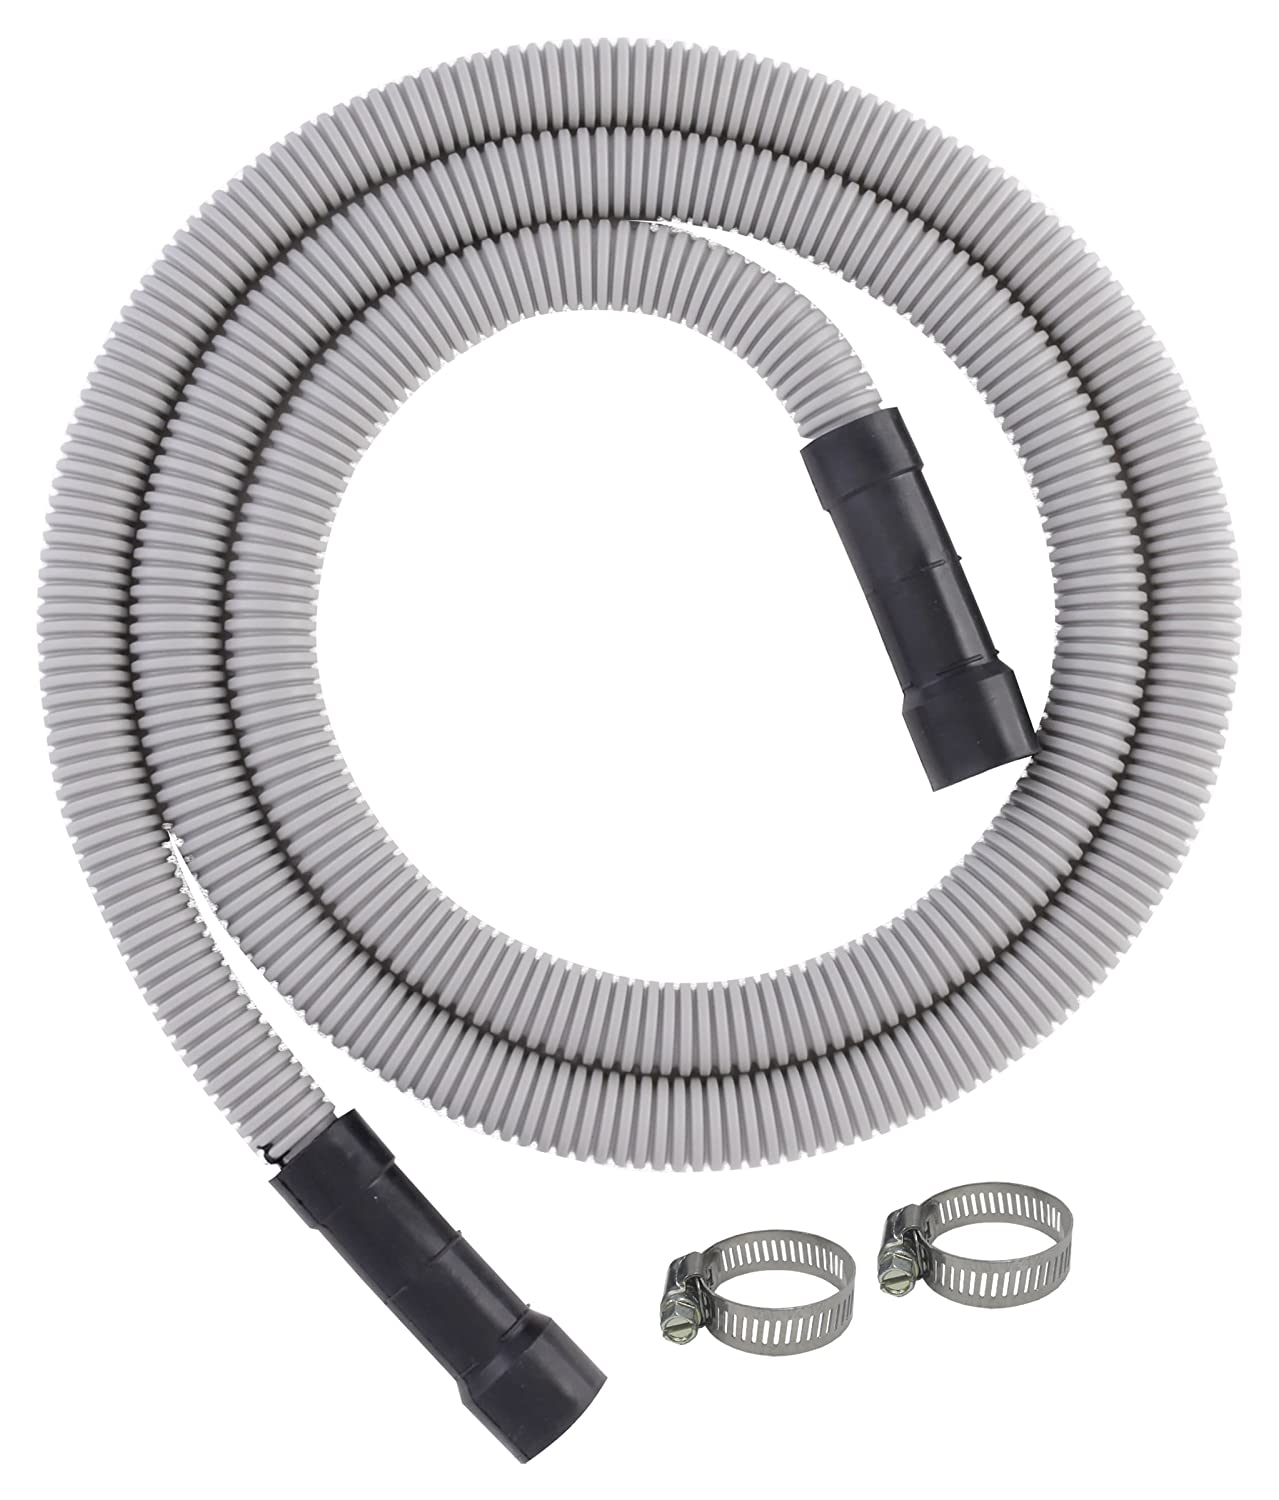 LDR Industries Dishwasher Water Discharge Drain Hose, For Dishwashers With 5/8 Inch, 3/4 Inch or 1 Inch Connections, 504 1500